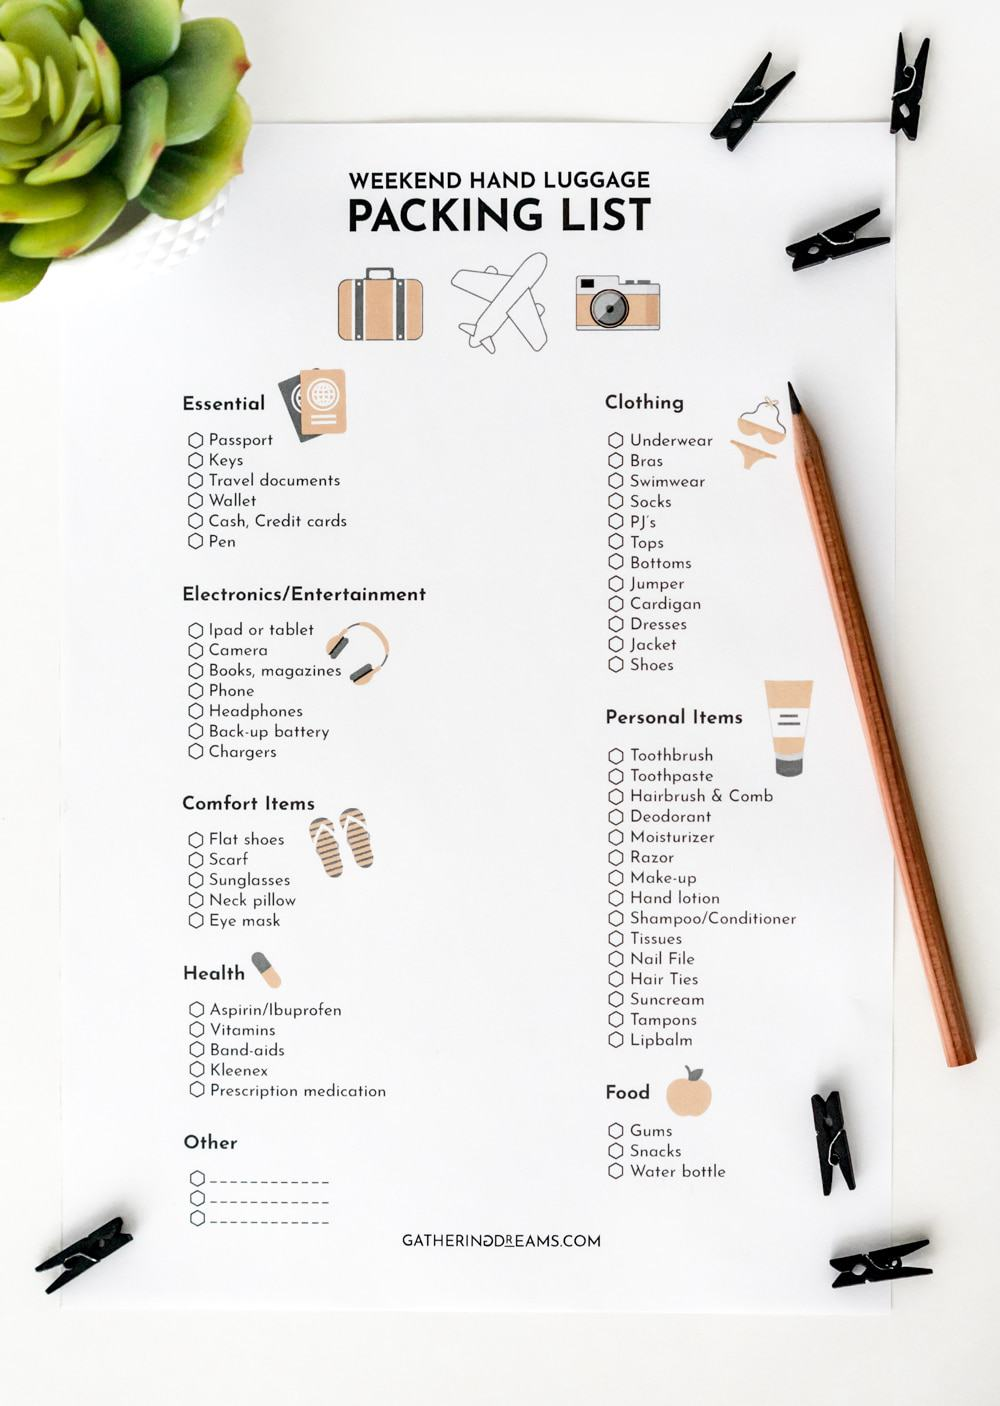 The best packing tips from the pro! The ultimate list of packing mistakes to avoid to ensure you are packing to perfection for your next vacation! Download the ultimate weekend packing check-list.